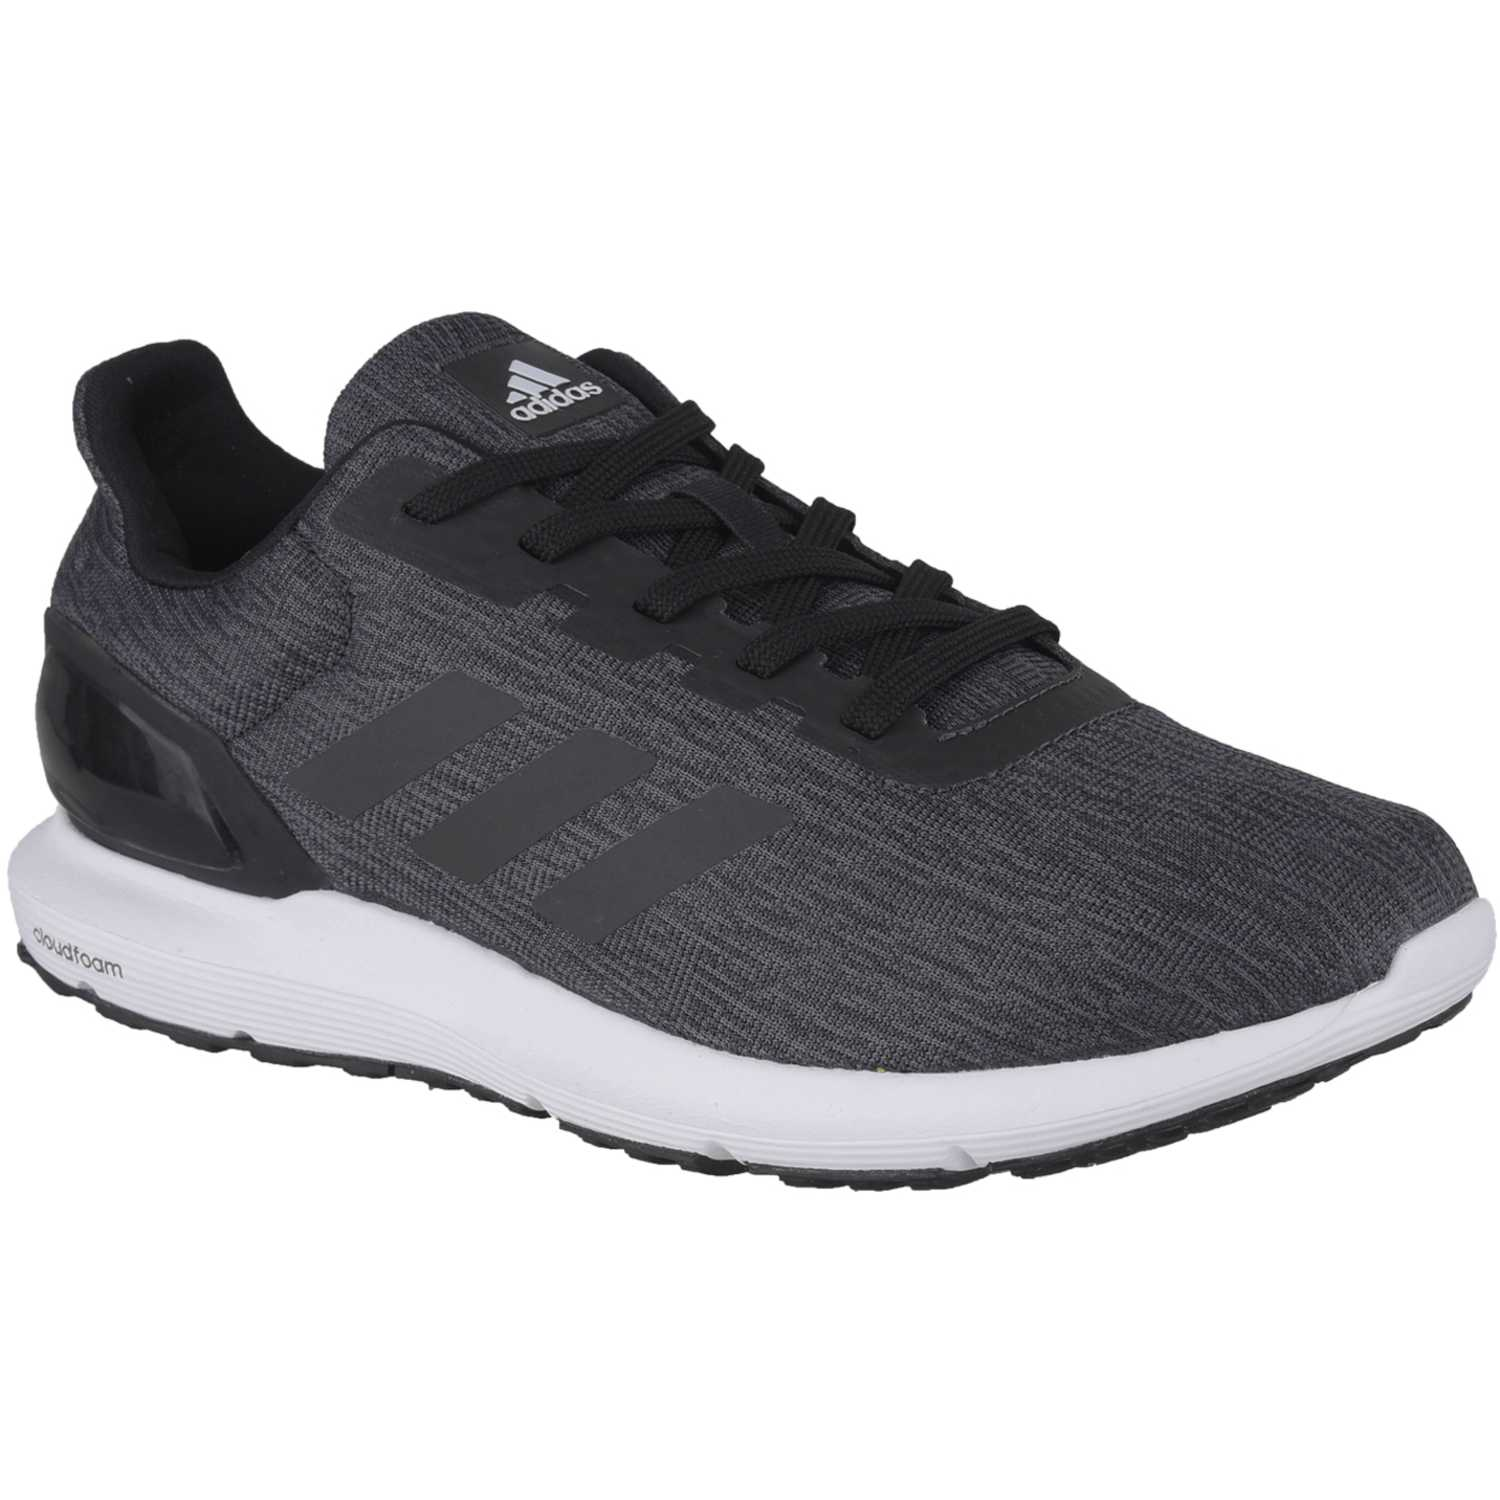 new product 5fe60 01550 Zapatilla de Mujer adidas Gris Oscuro cosmic 2 w